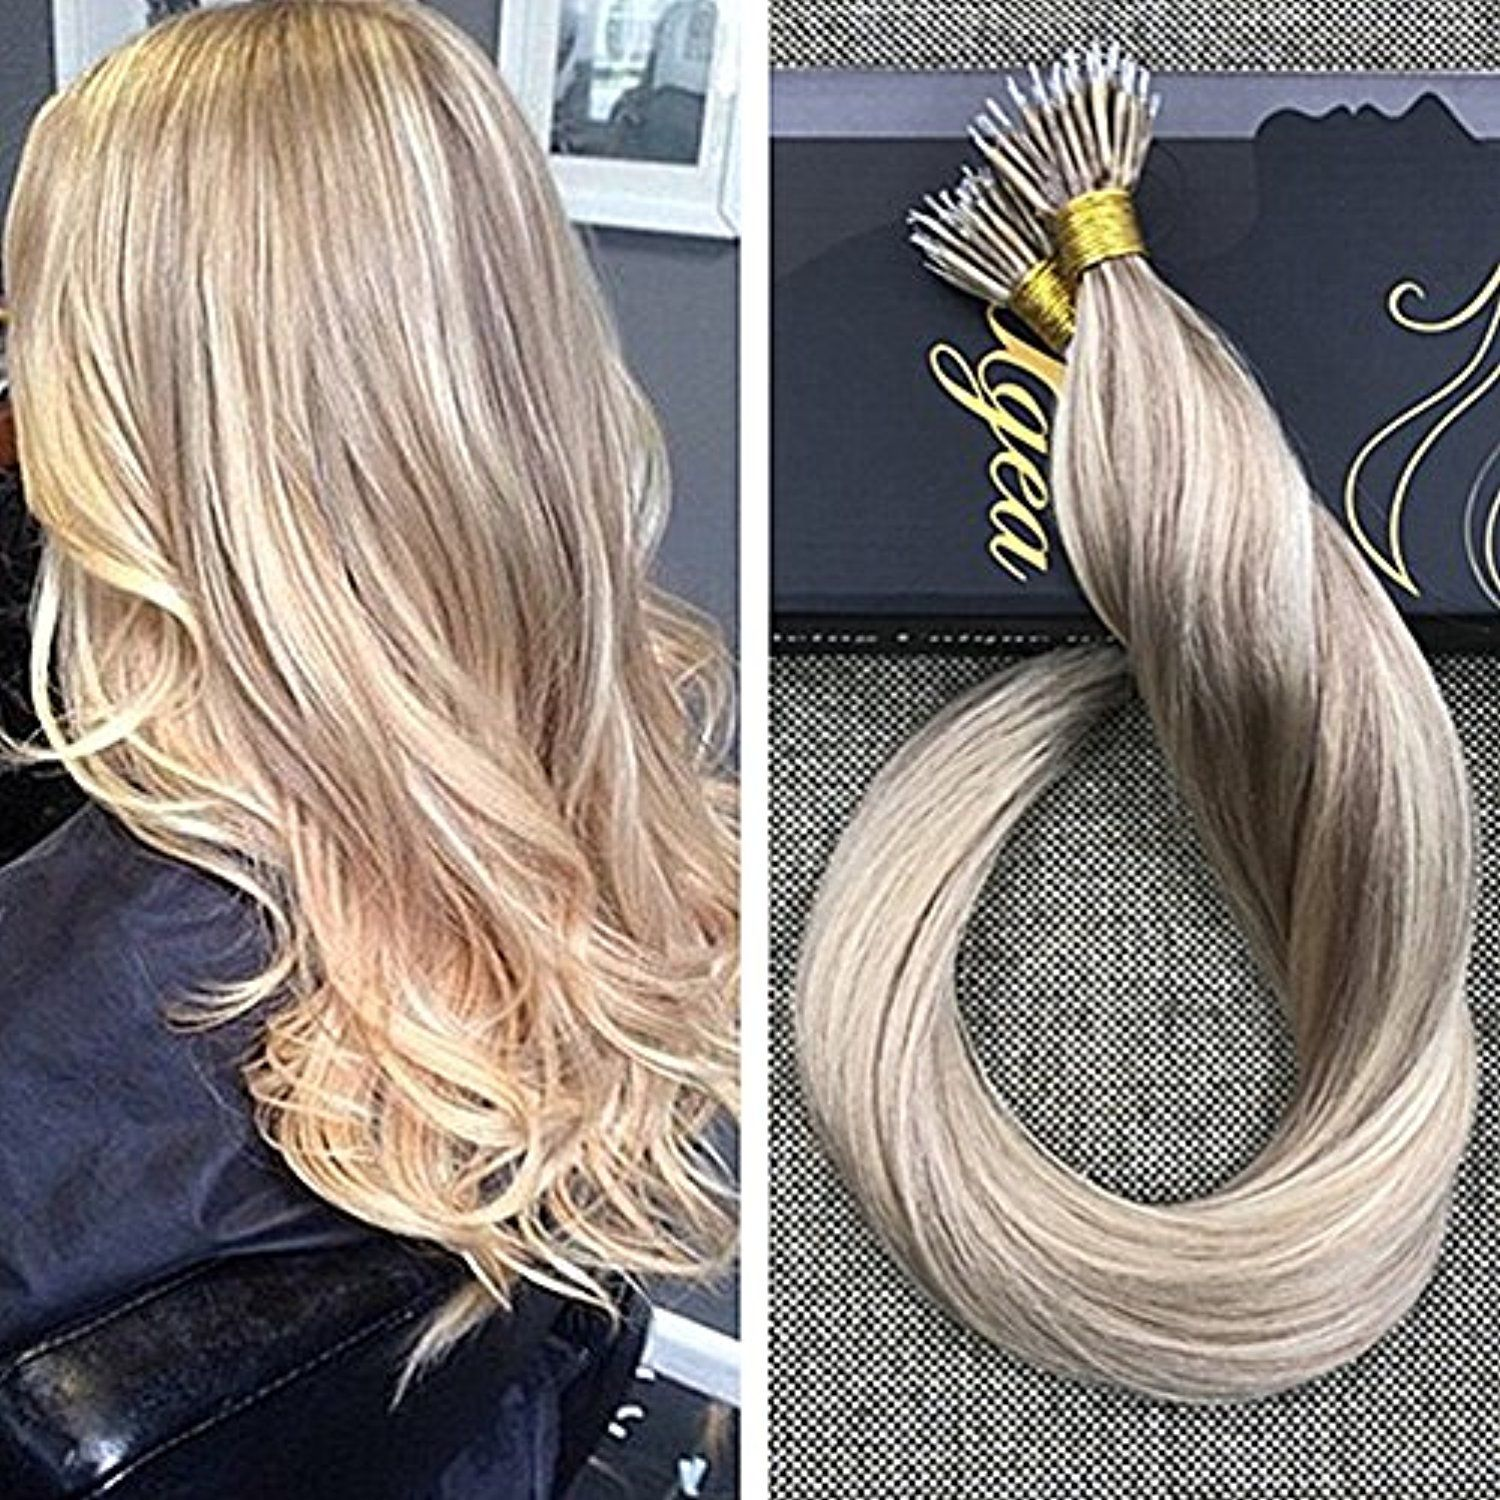 Pin On Human Hair Extensions